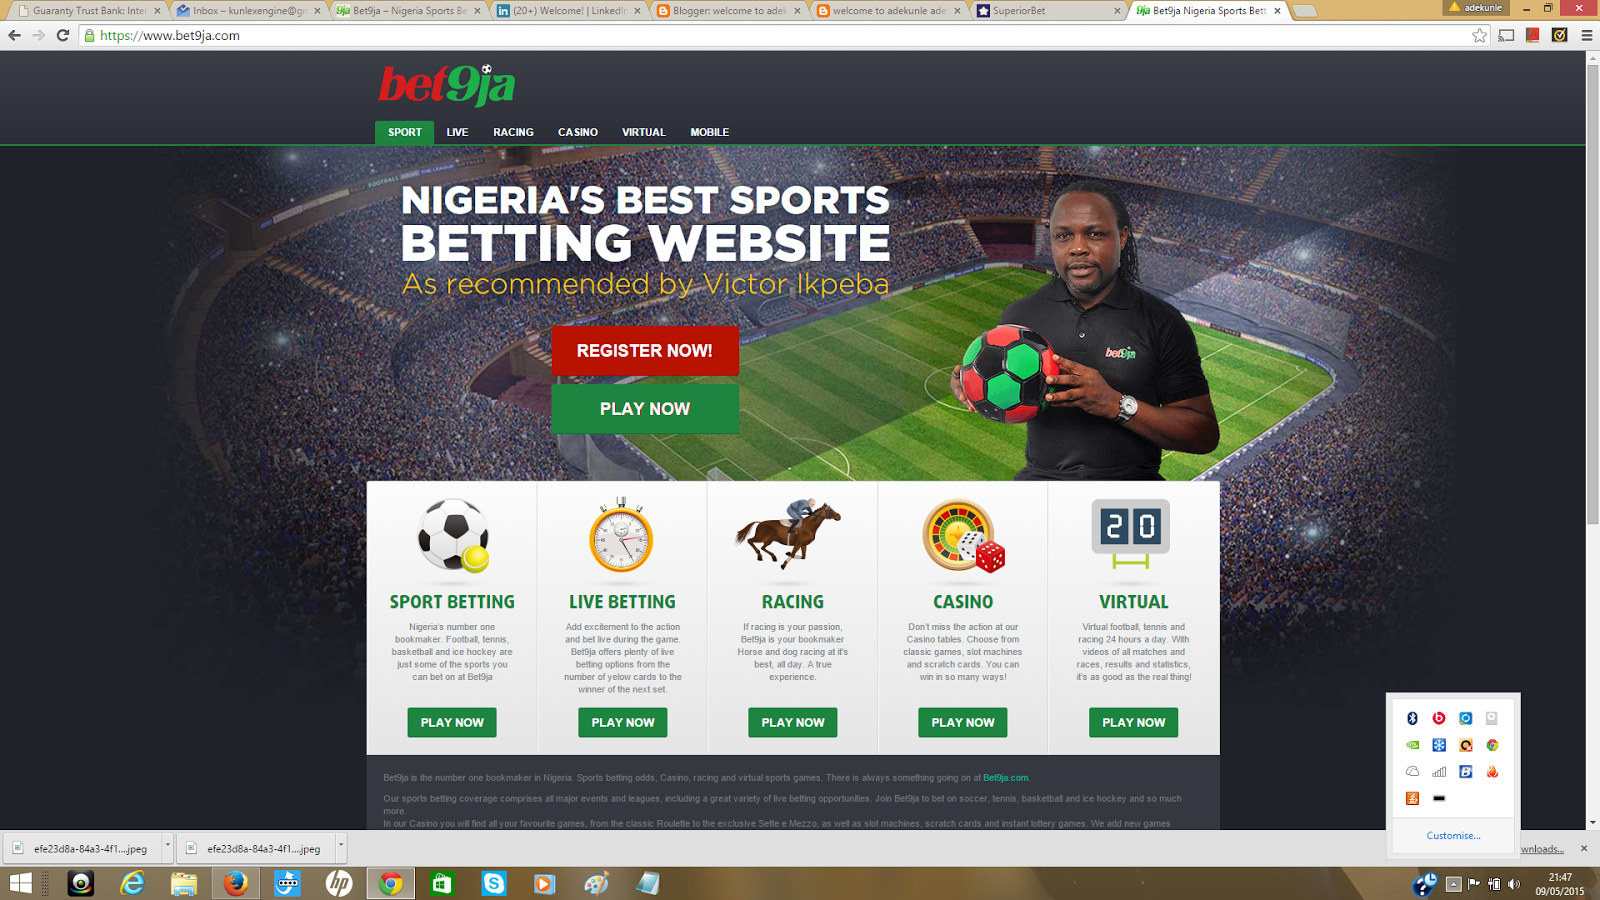 Bet9ja website got a new look